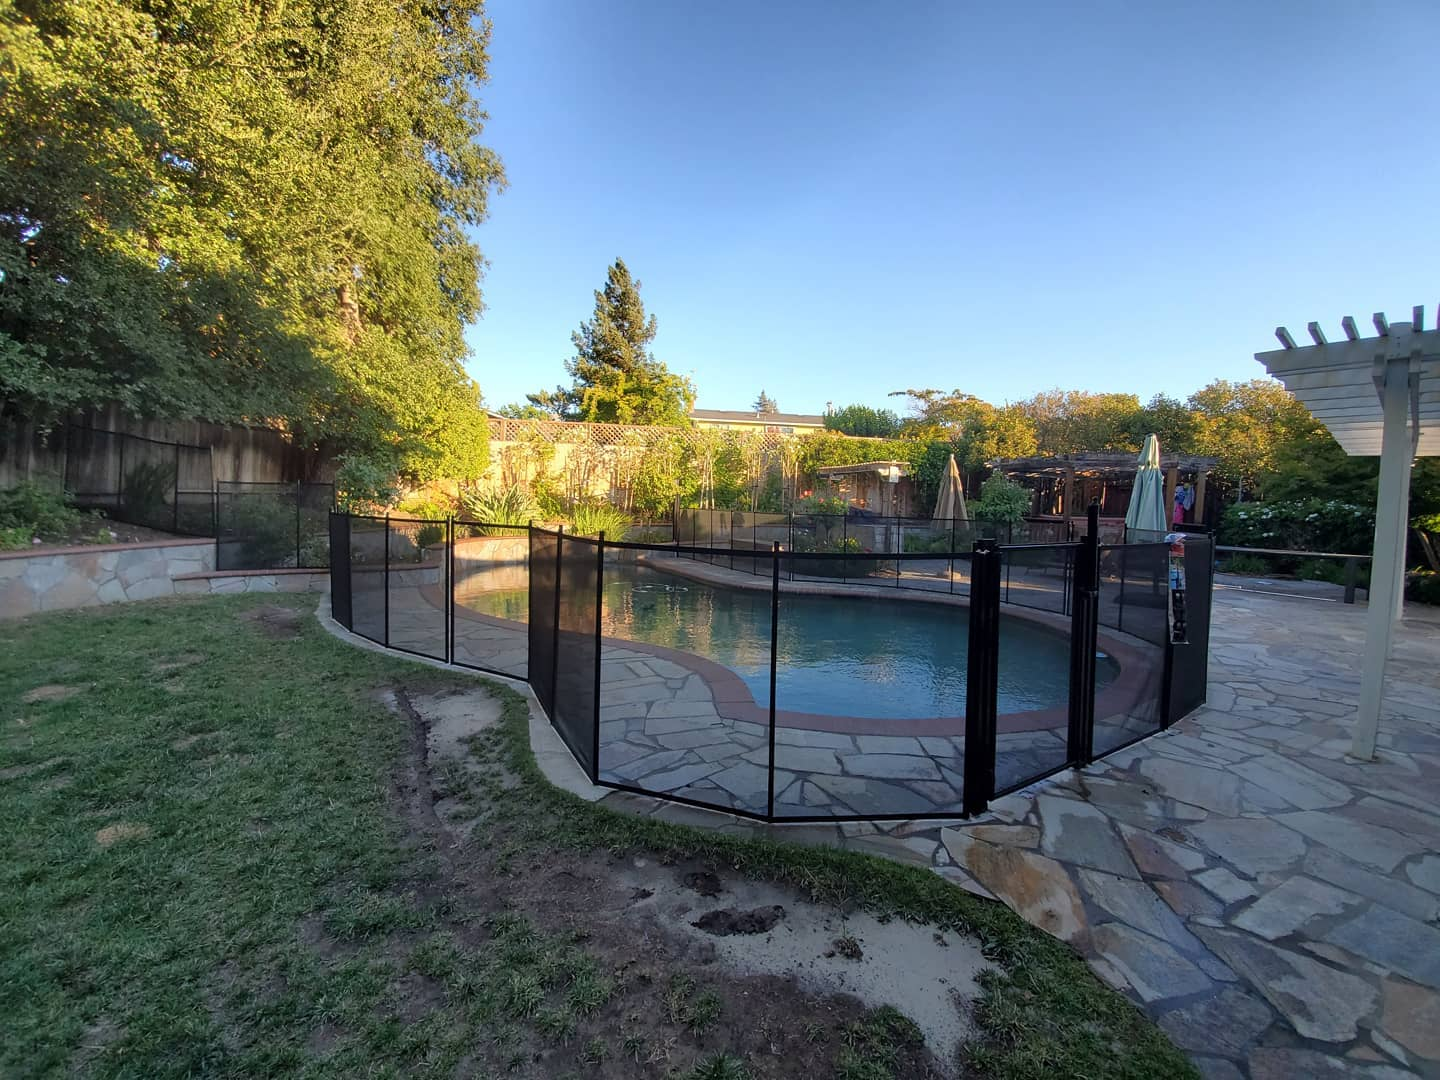 pool fence company/installer in Lafayette, CA